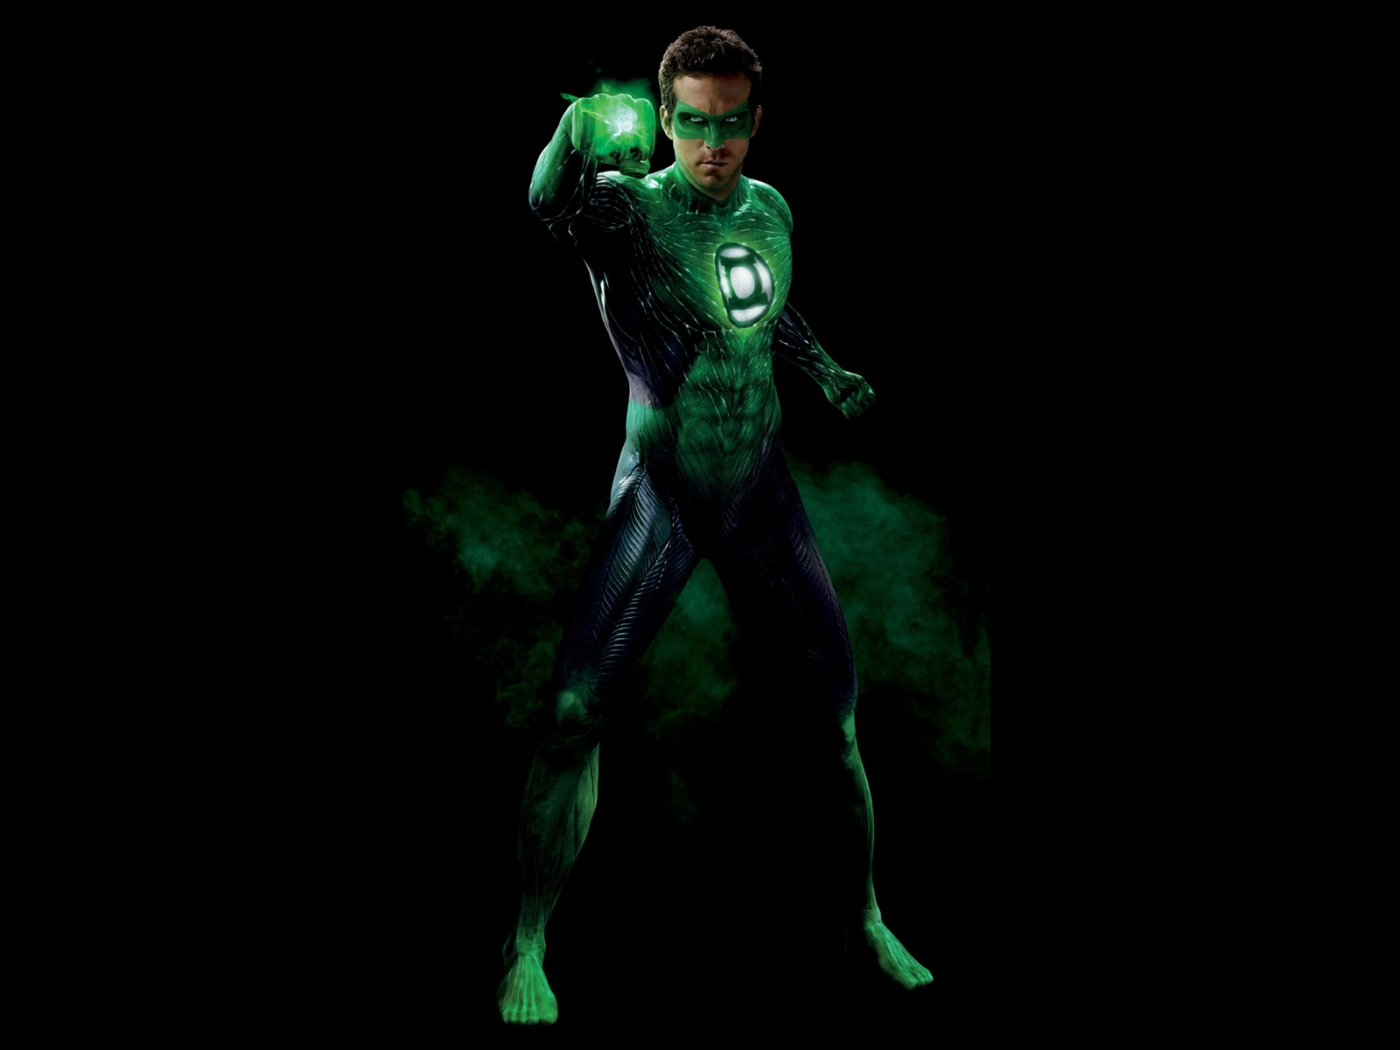 37027 download wallpaper Cinema, Green Lantern screensavers and pictures for free